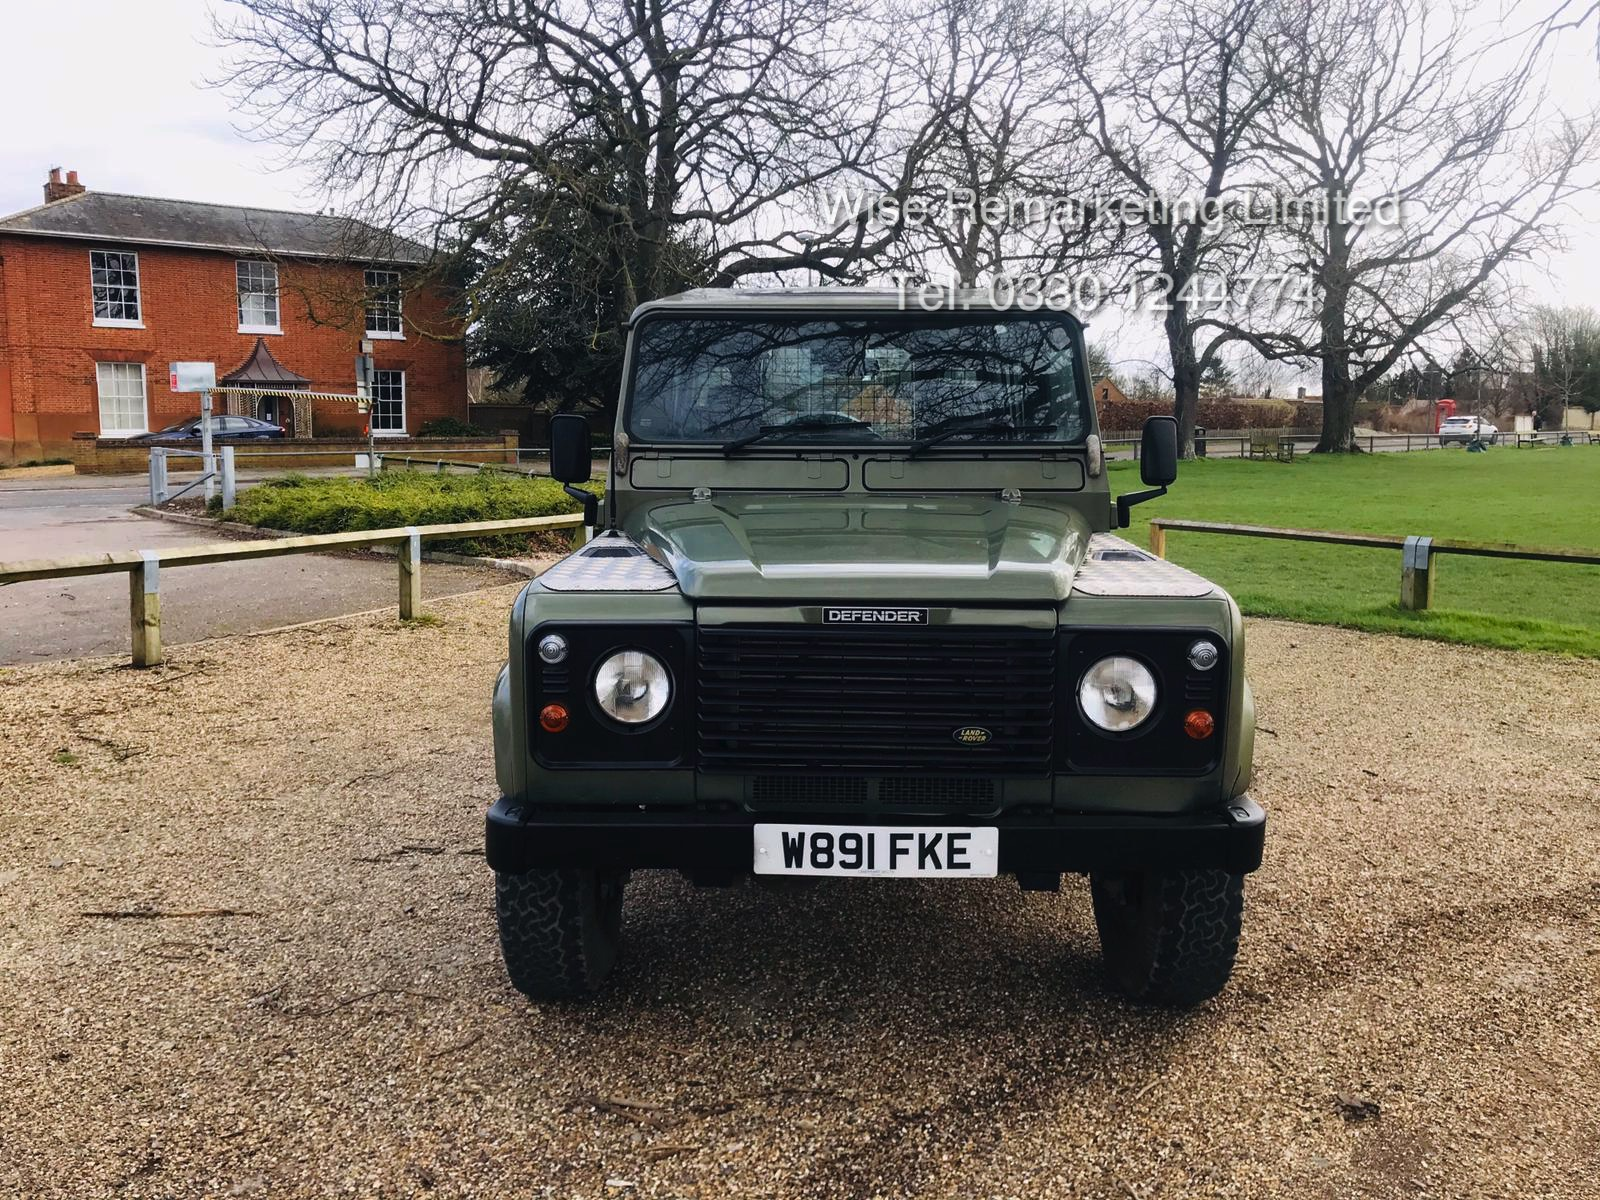 (RESERVE MET) Land Rover Defender 90 County 2.5 TD5 - 2000 Year W Reg - 7 Seater- SAVE 20% NO VAT - Image 4 of 12